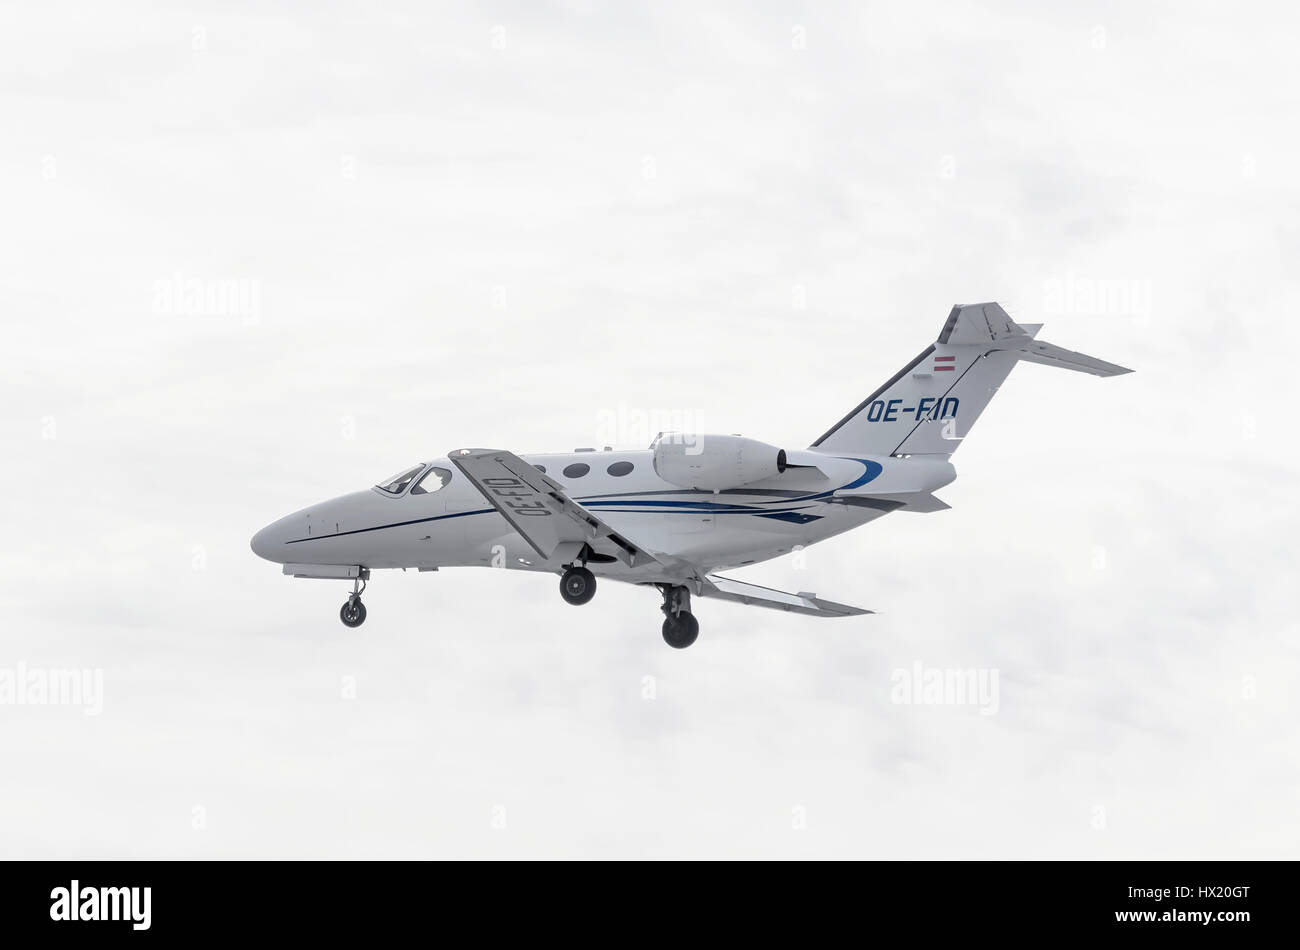 Business jet Cessna 510 Citation Mustang, of Globe Air charter airline, is landing on Madrid - Barajas, Adolfo Suarez - Stock Image